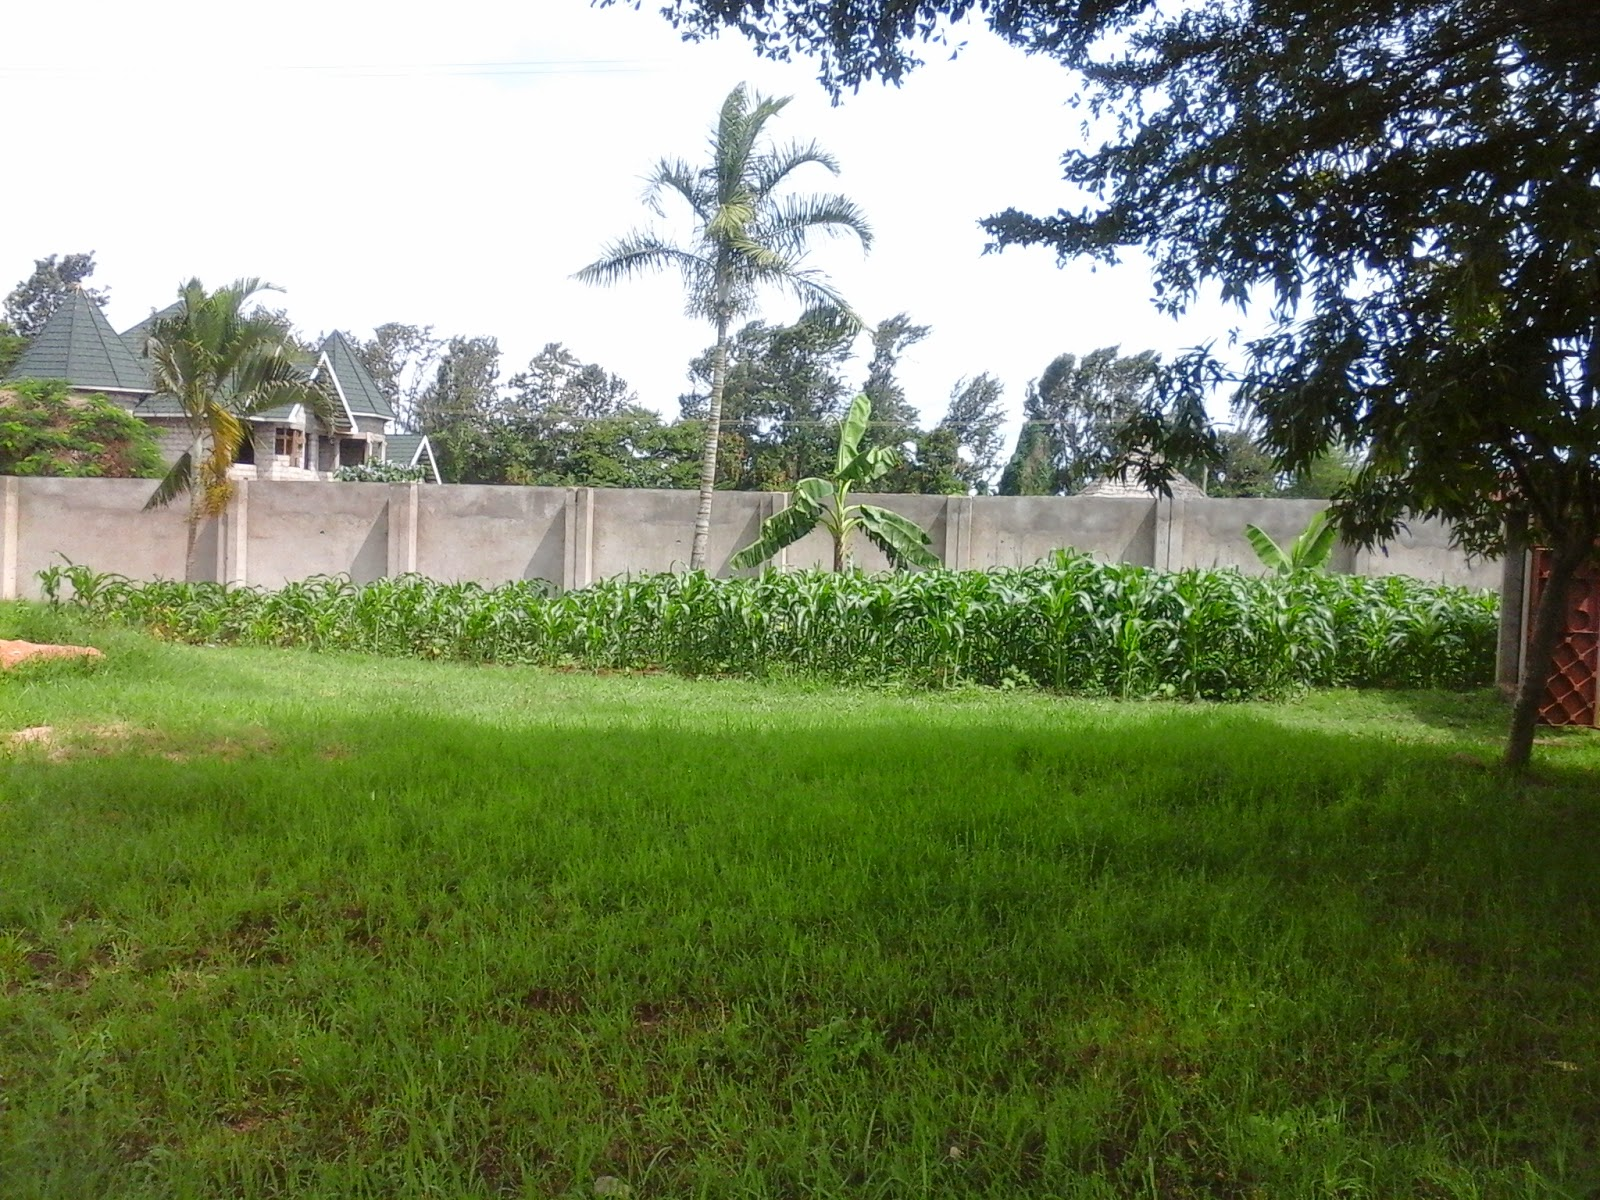 Rent House In Tanzania Arusha Rent Houses Houses For Sale House